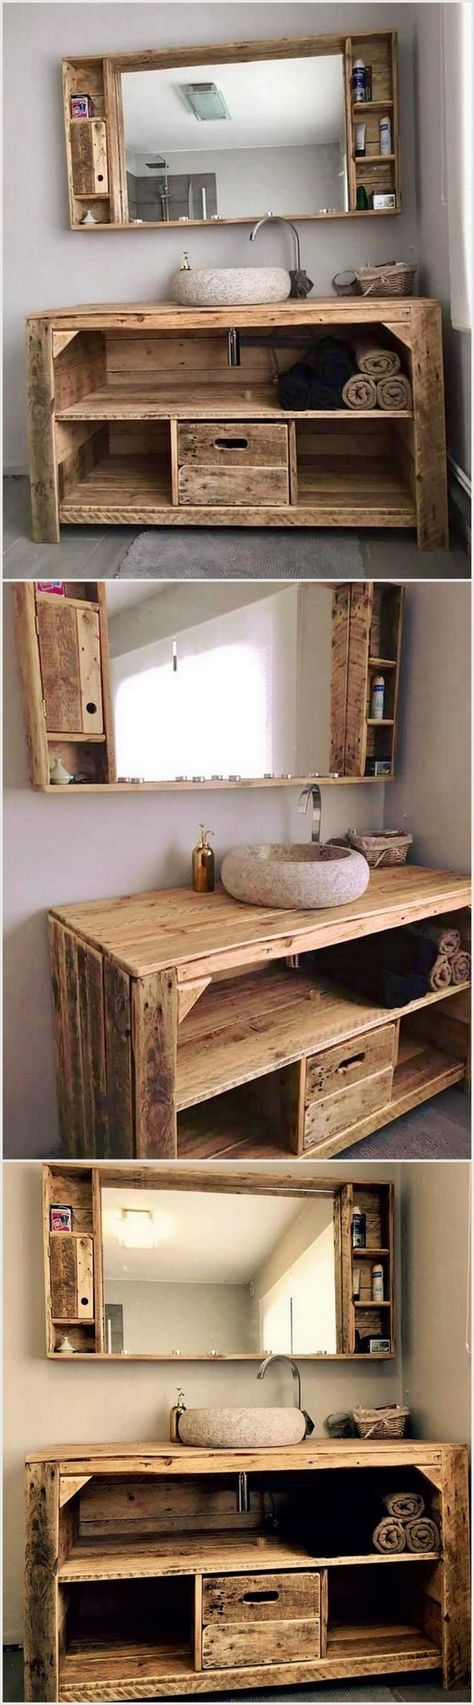 Excellent ideas with used wood pallets wood pallets pallets and sinks